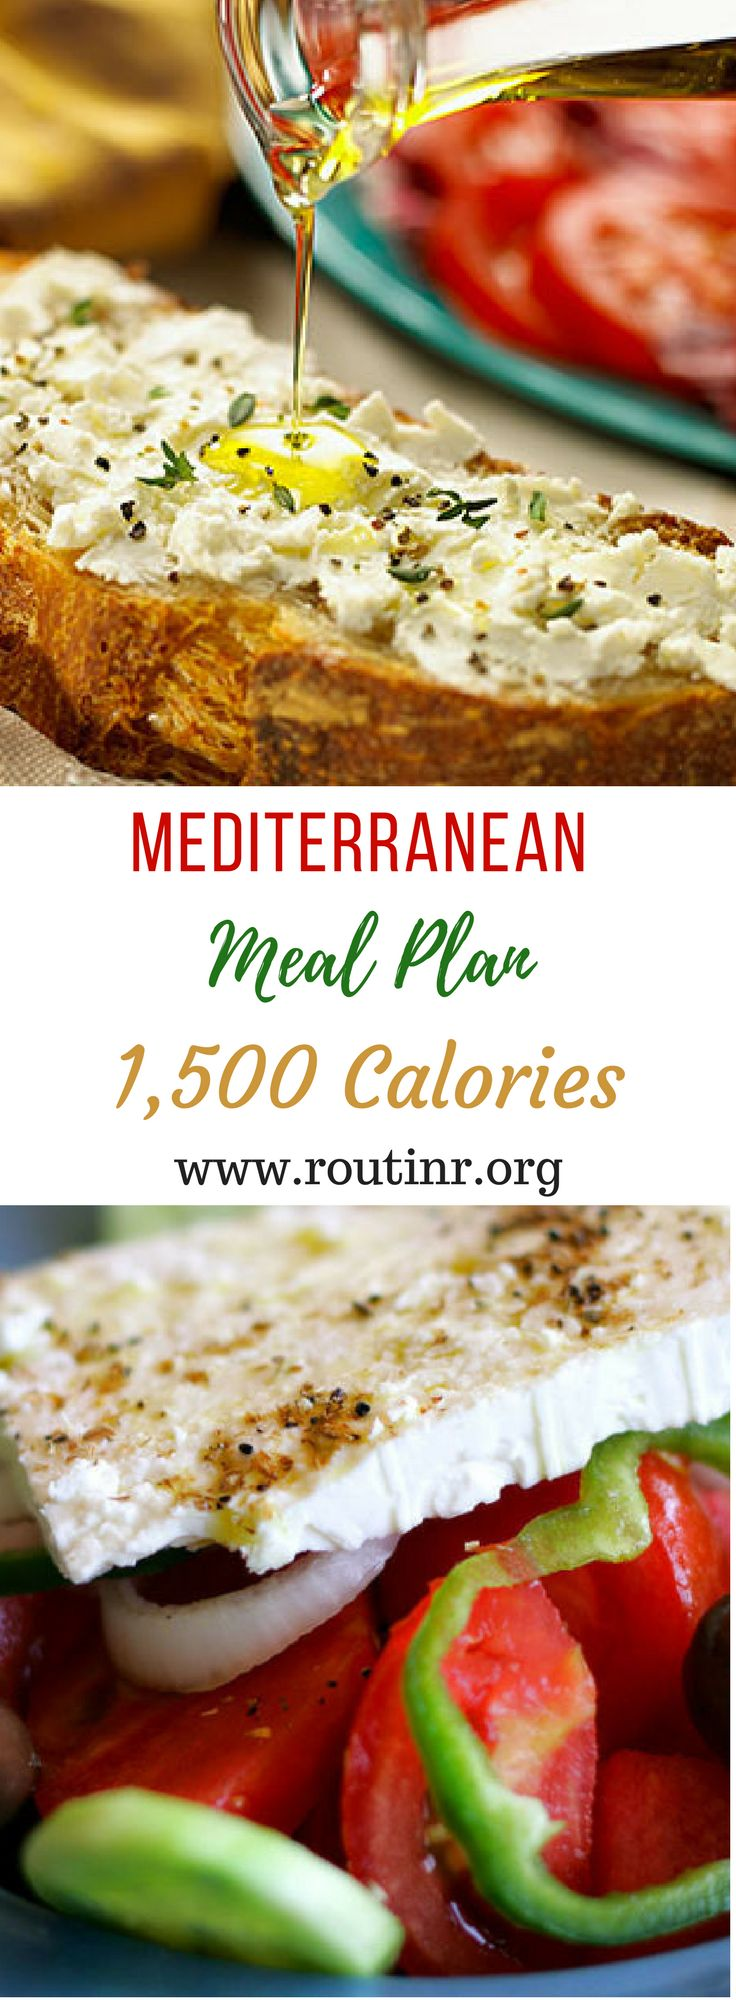 Mediterranean Diet Meal Plans: Mediterranean Meal Plan: 1,500 Calories. If you're looking for a heart-healthy eating plan, the Mediterranean diet might be right for you. Find out more at: https://routinr.org/routines/mediterranean-meal-plan-1-500-calories